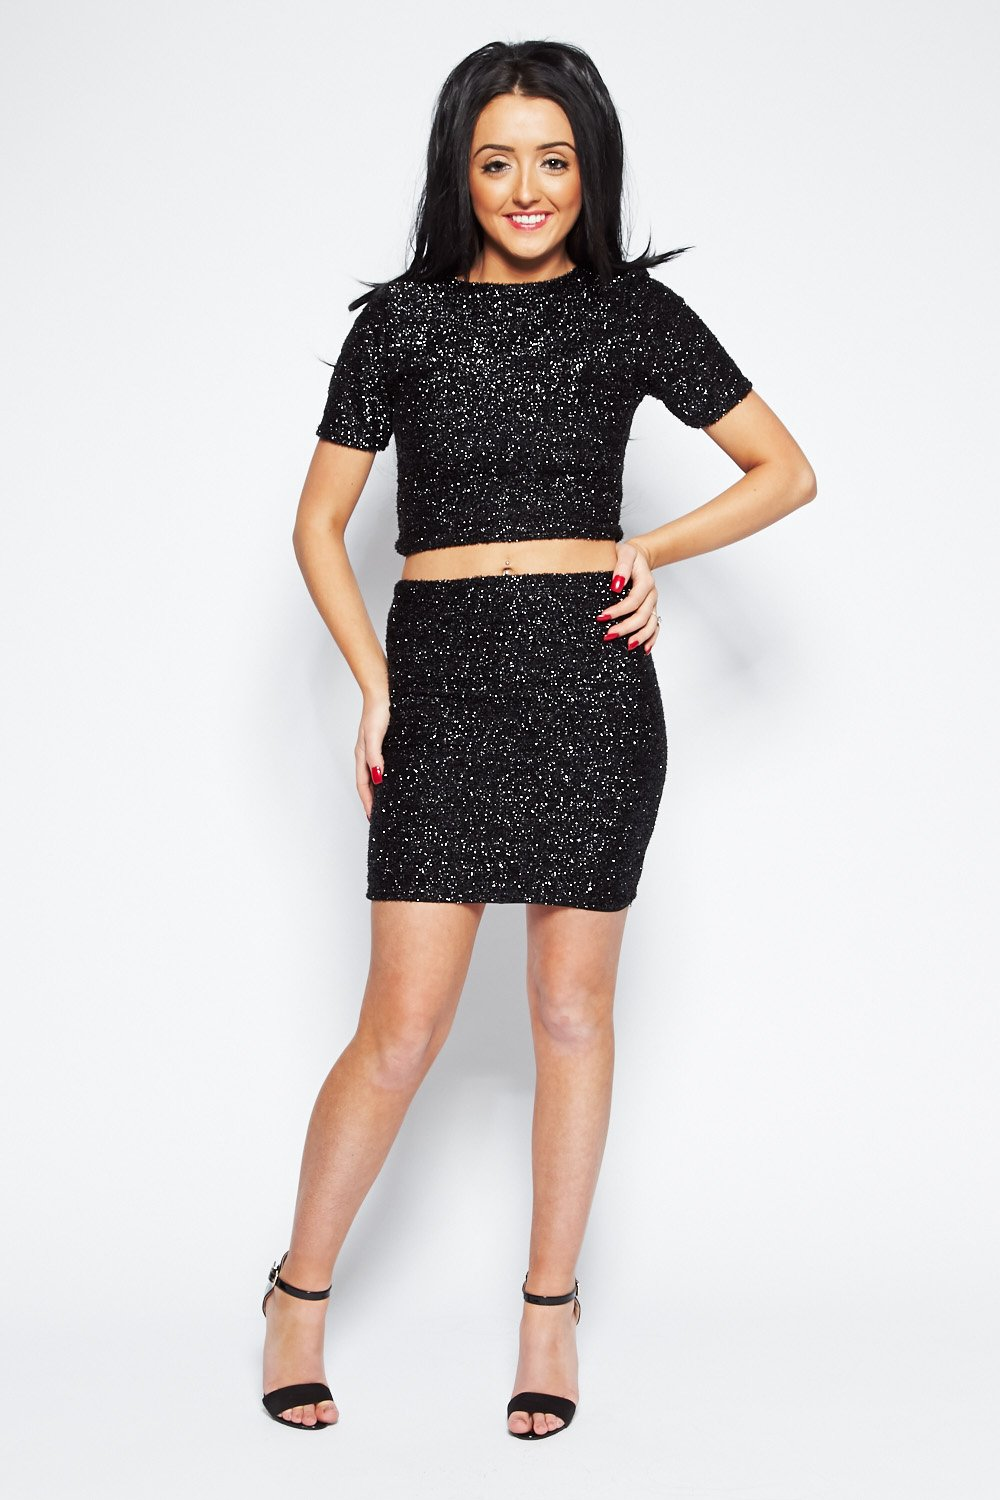 If a crop top skirt set isn't your thing, go for co ords with a two piece bodycon or a two piece bandage dress with a longer top. Trust us, the 2 piece bandage set is the hottest of all the 2 piece dress sets!